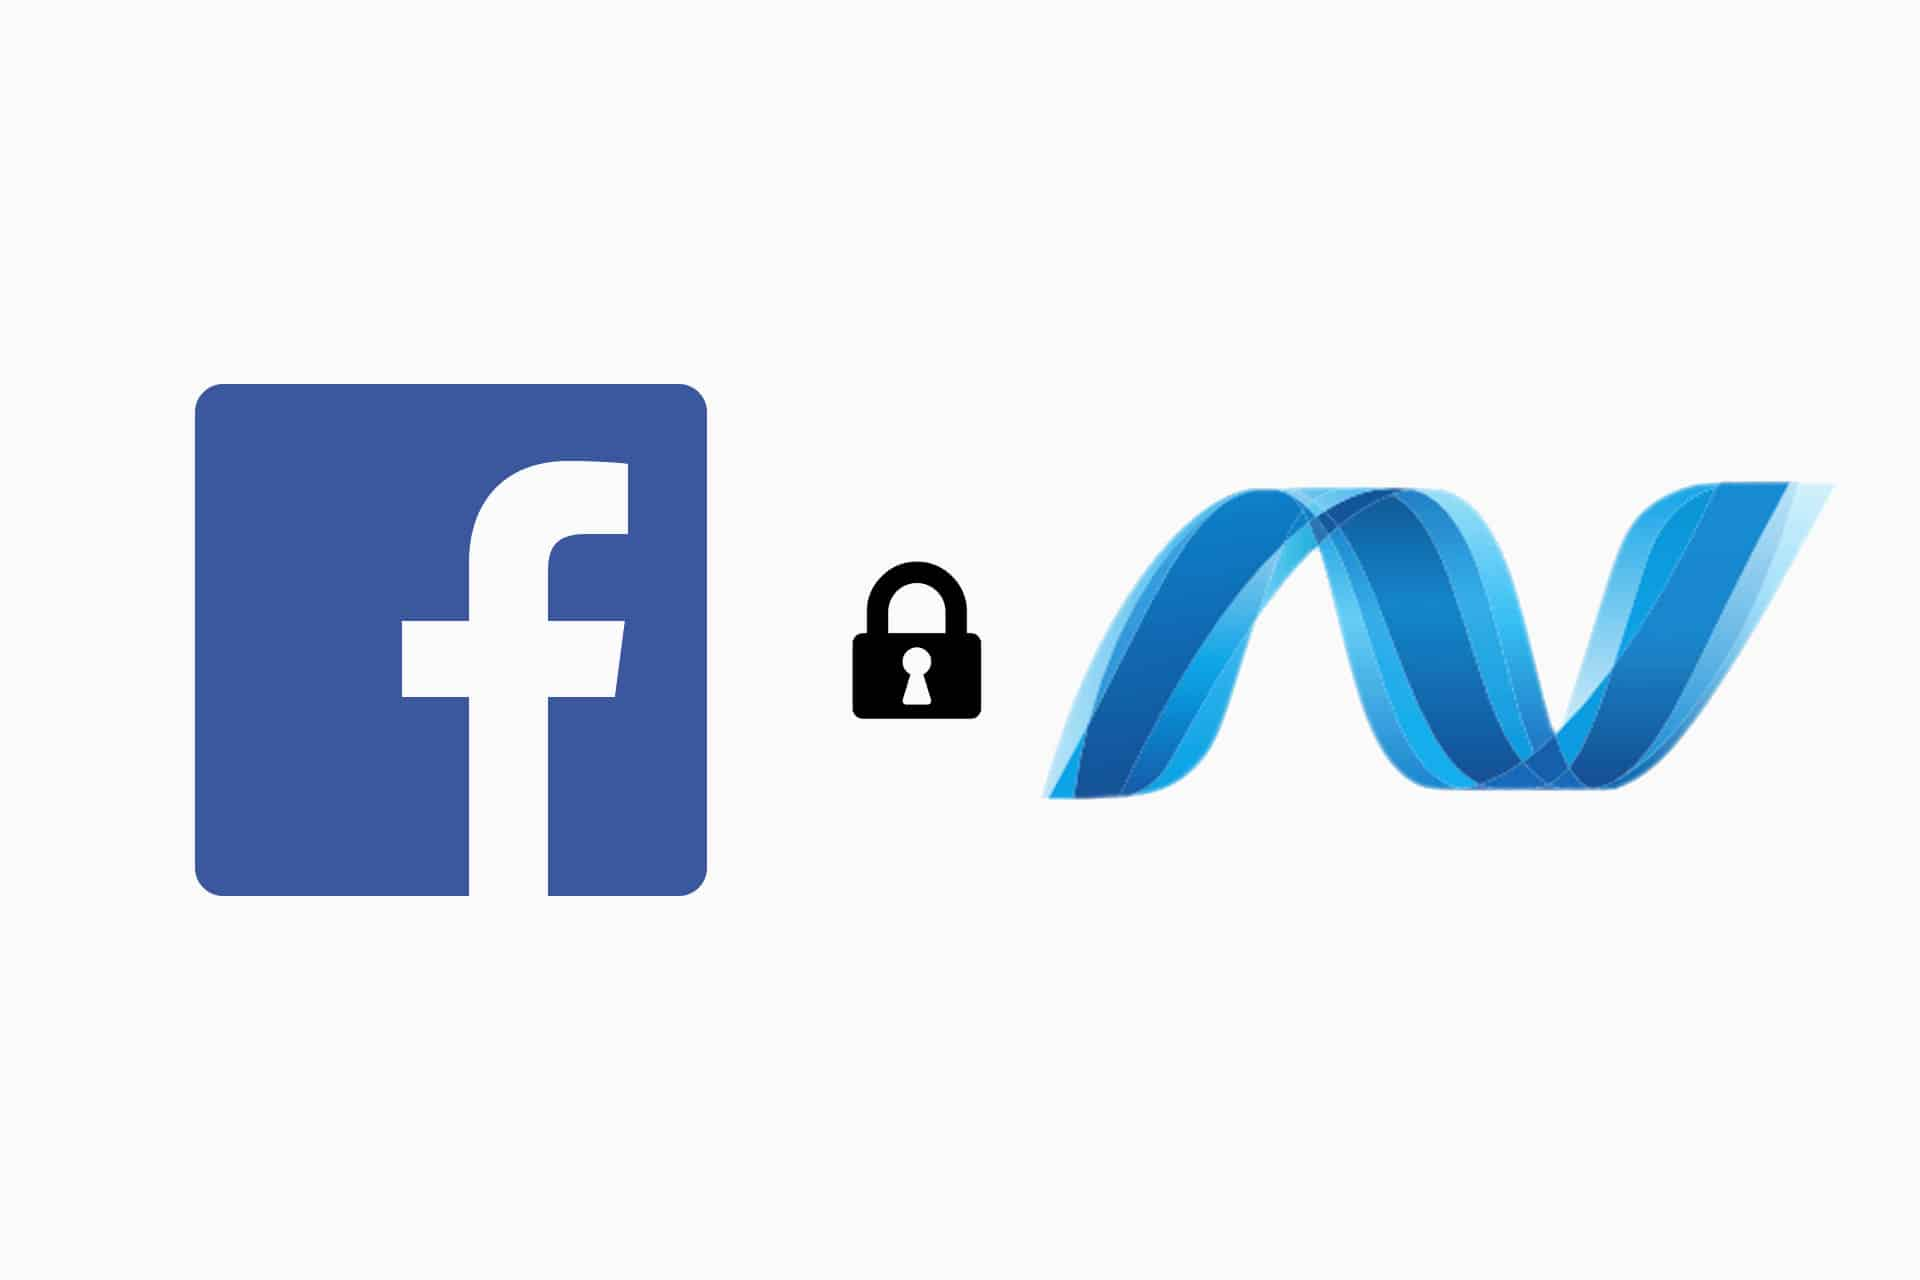 An introduction to OAuth 2.0 using Facebook in ASP.NET Core